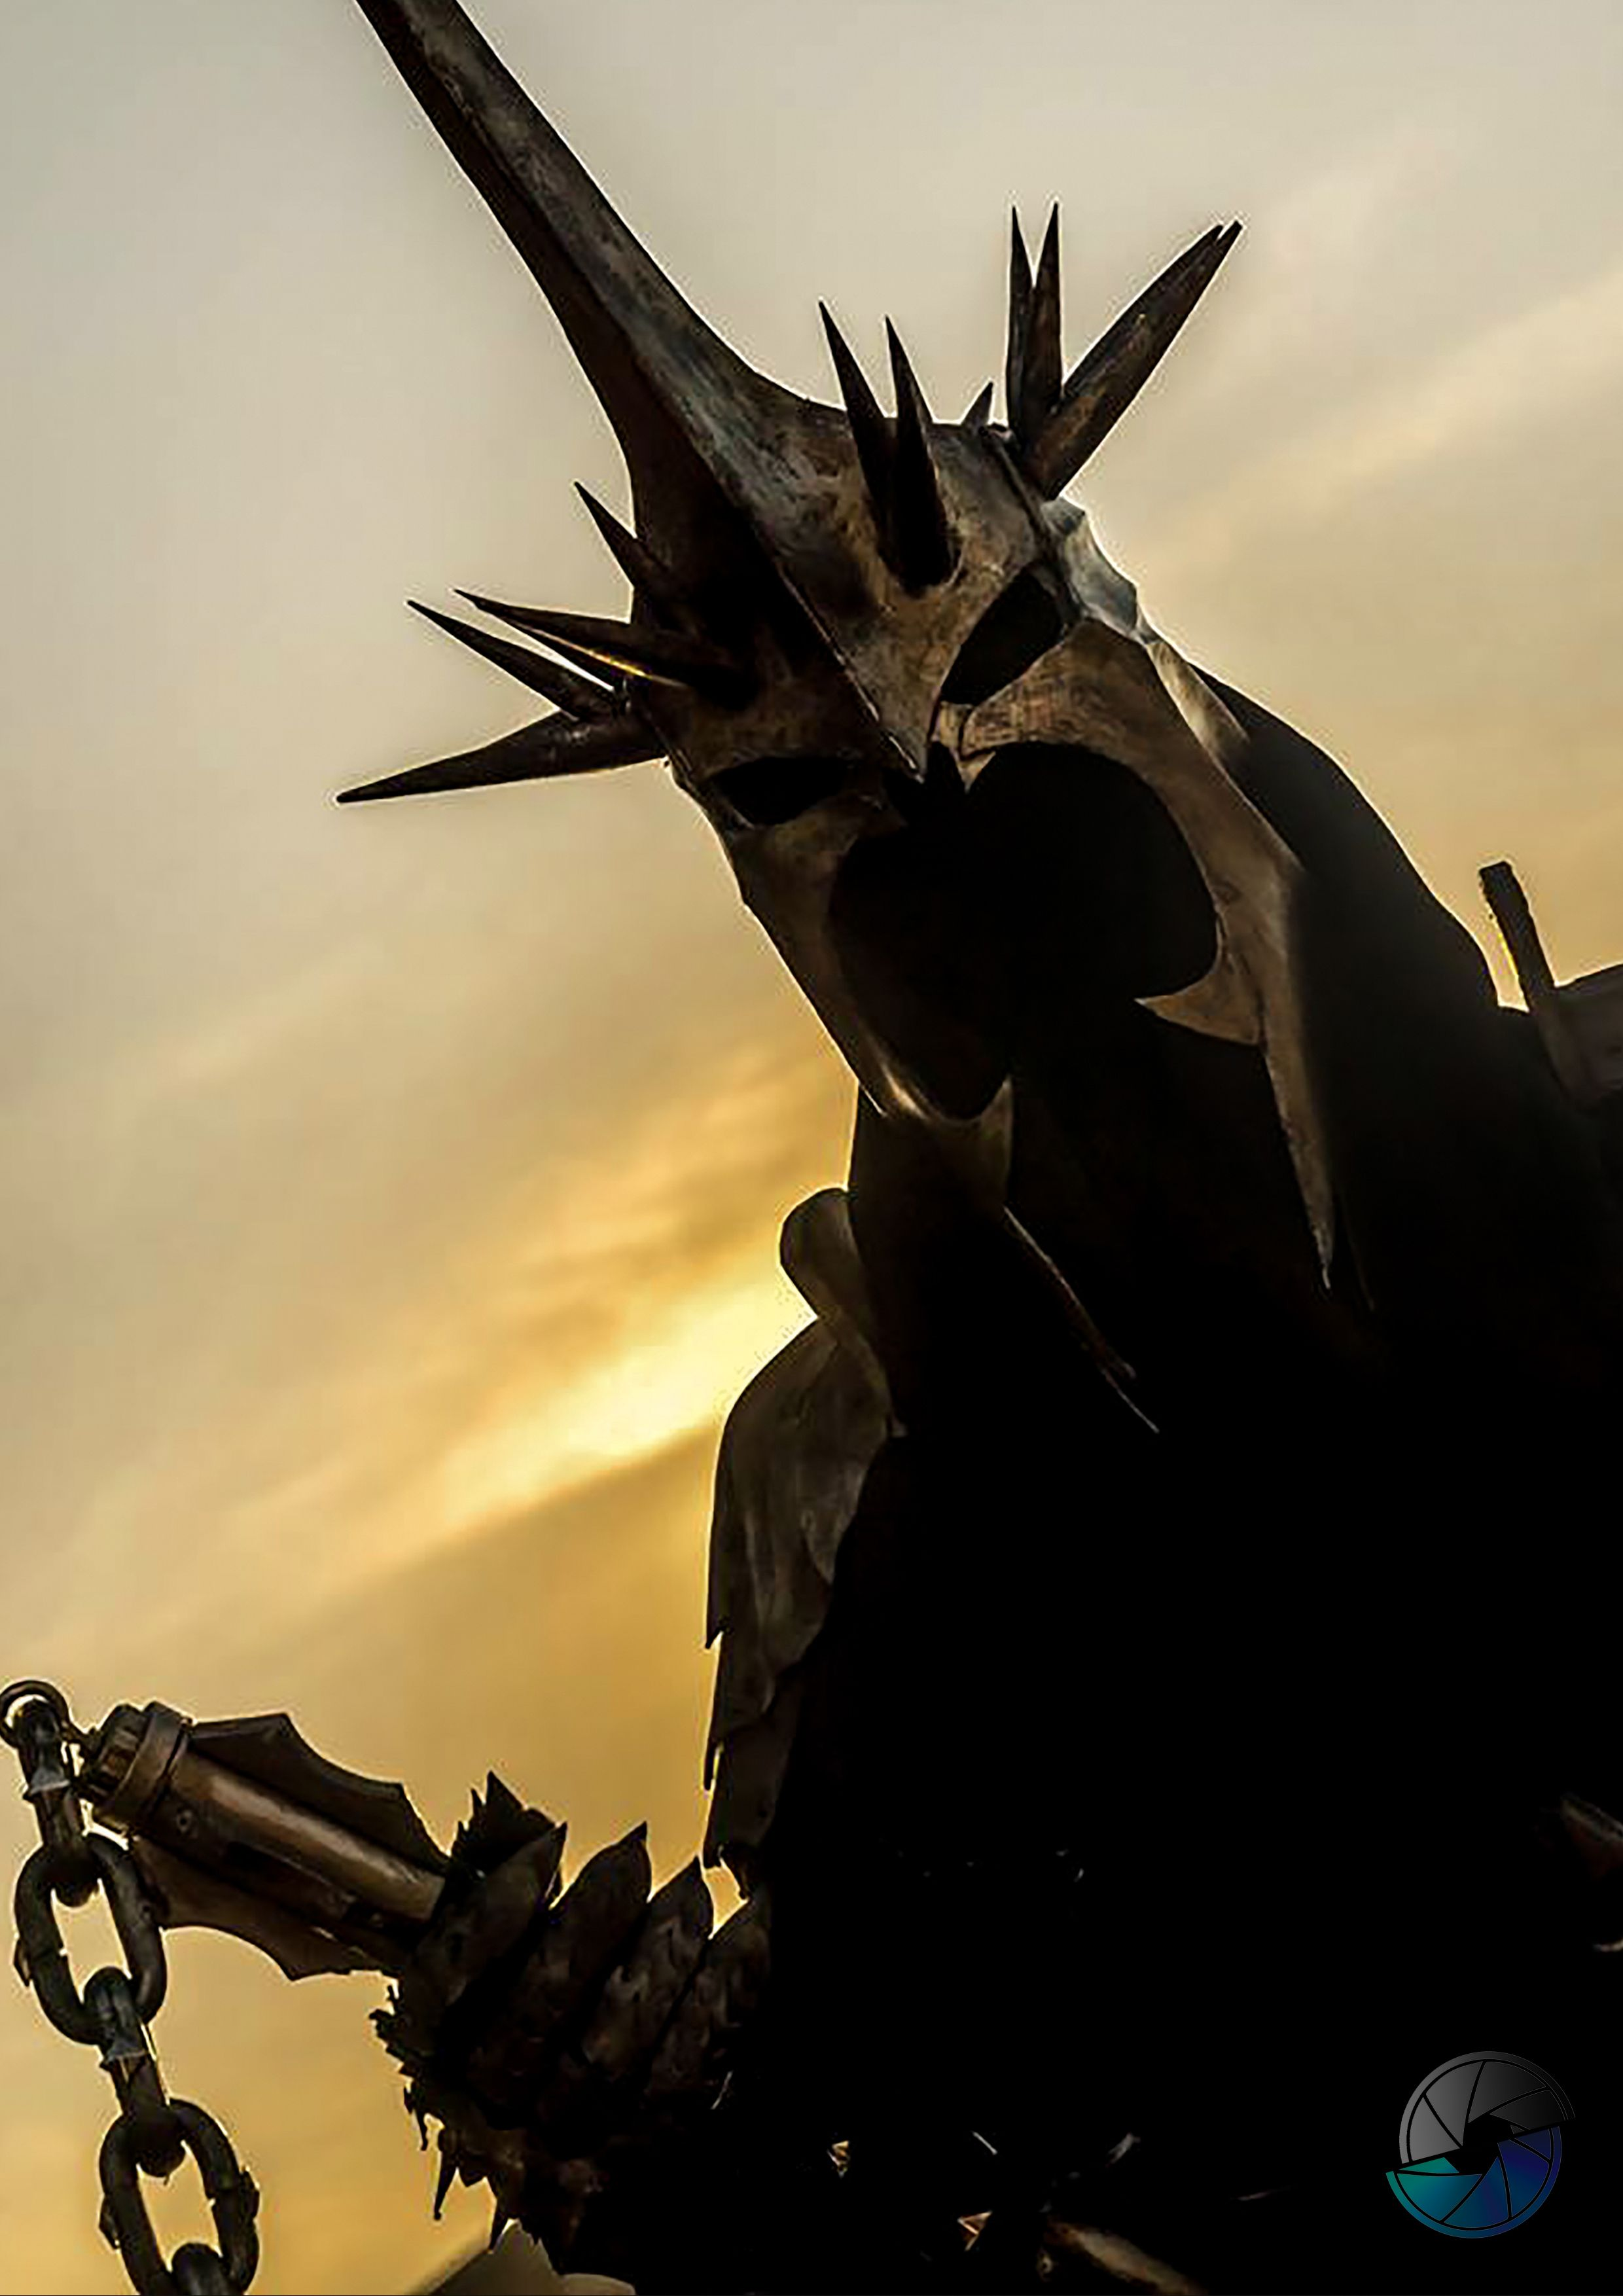 Witch King From Thelordoftherings Nazgul Witchking Cosplay Witch Cosplay Geek Out